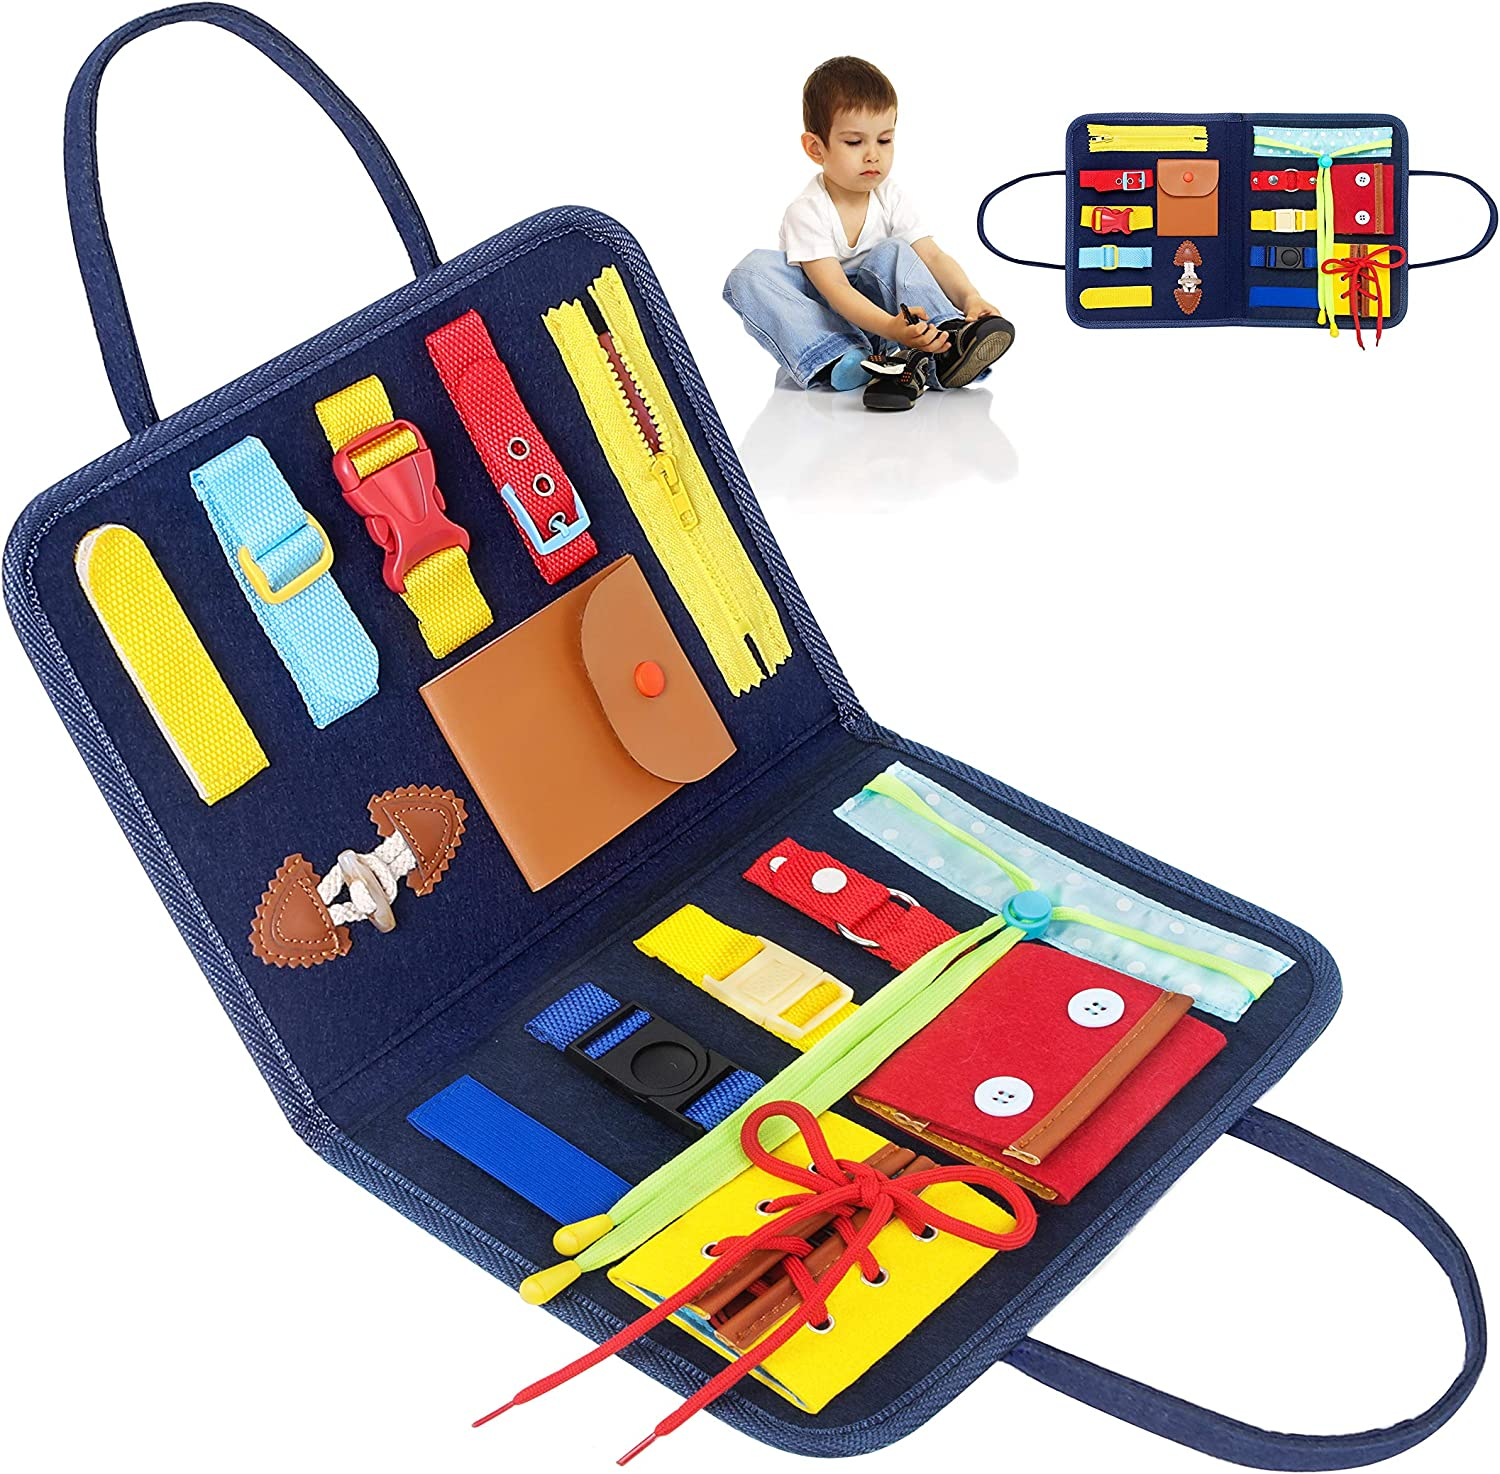 PERSONALIZED XXL Busy Board 19in1 MONTESSORI House with light Educational Activity Sensory busyboard for toddlers Wooden toy